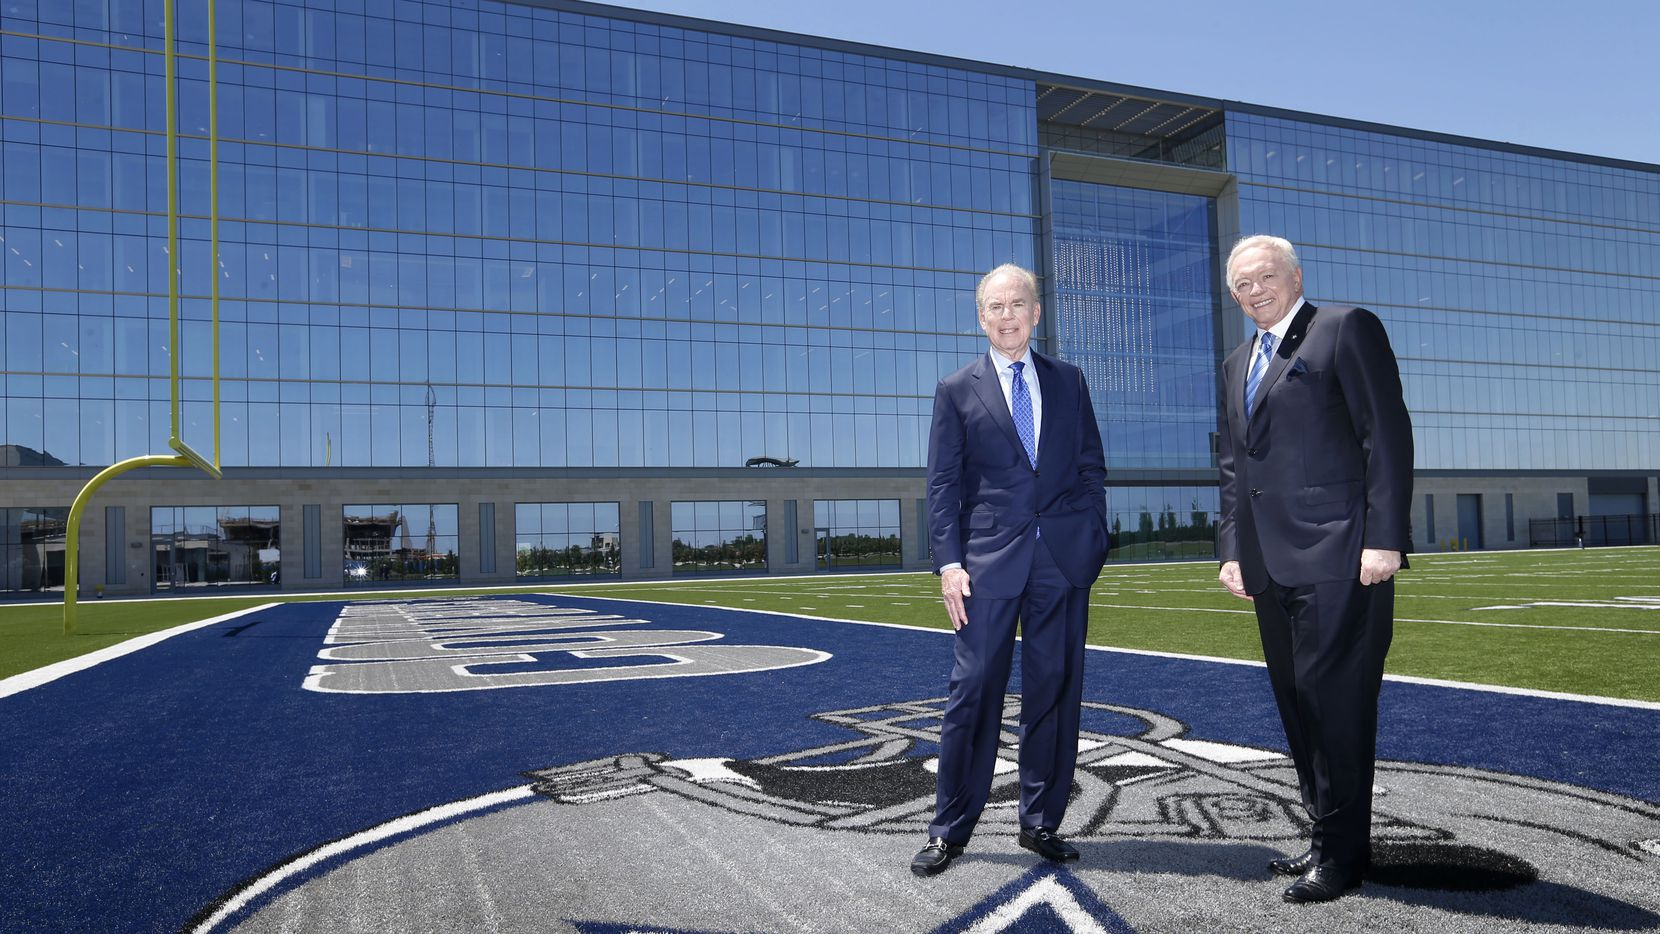 Former Dallas Cowboys quarterback Roger Staubach and Dallas Cowboys owner and general manager Jerry Jones pose for a portrait at The Star in Frisco. Staubach and Jones are working together to build a high-rise apartment building at The Star.